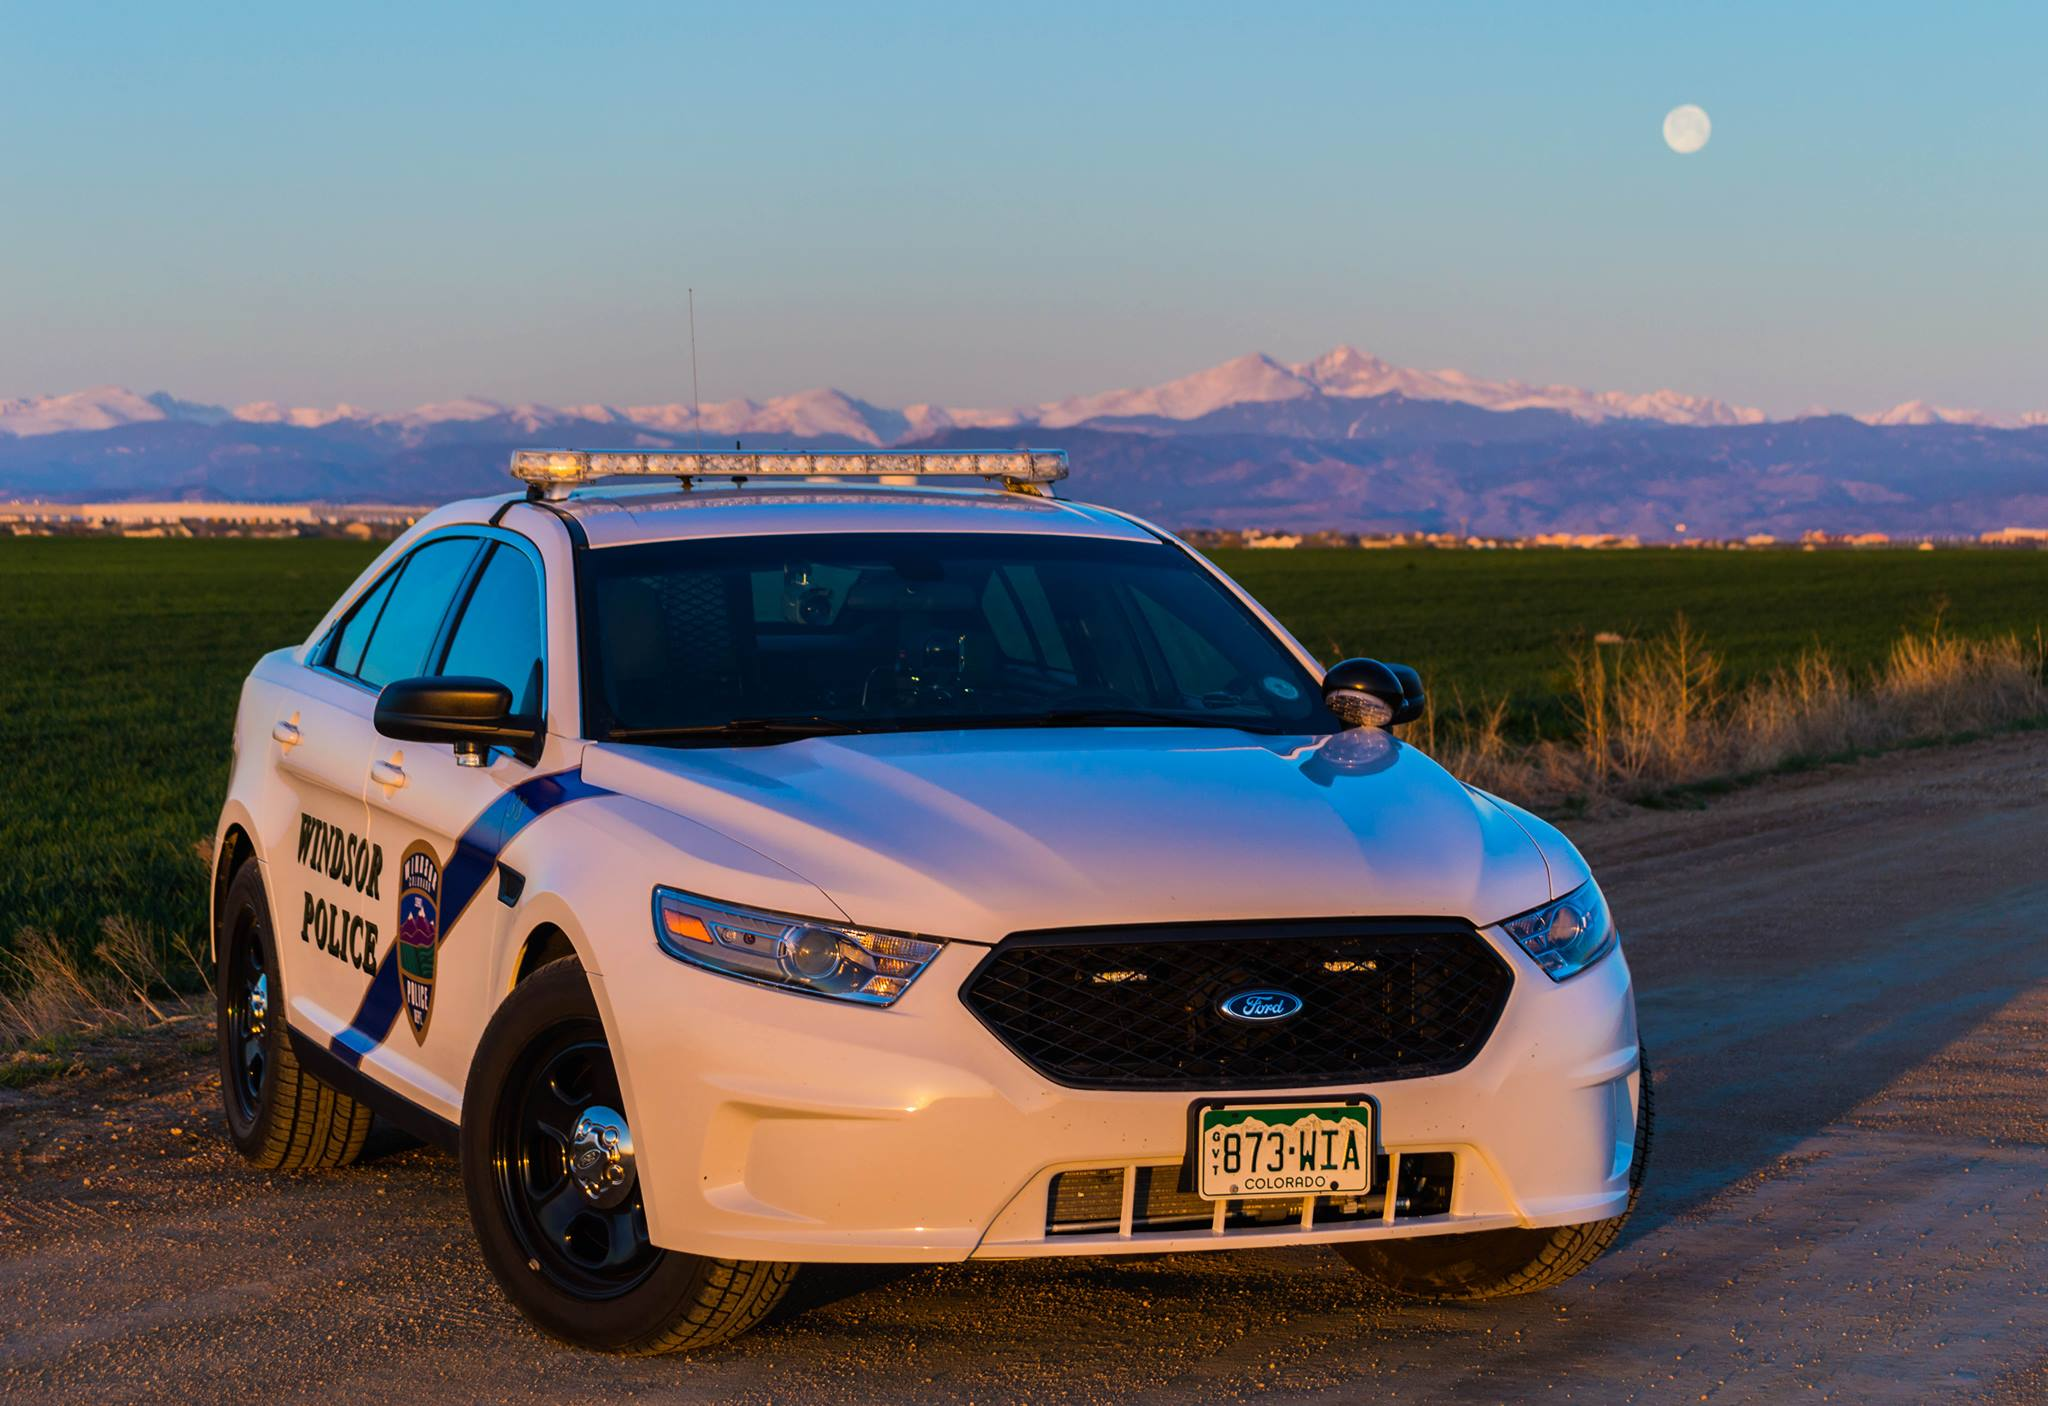 Patrol car with mtns.jpg